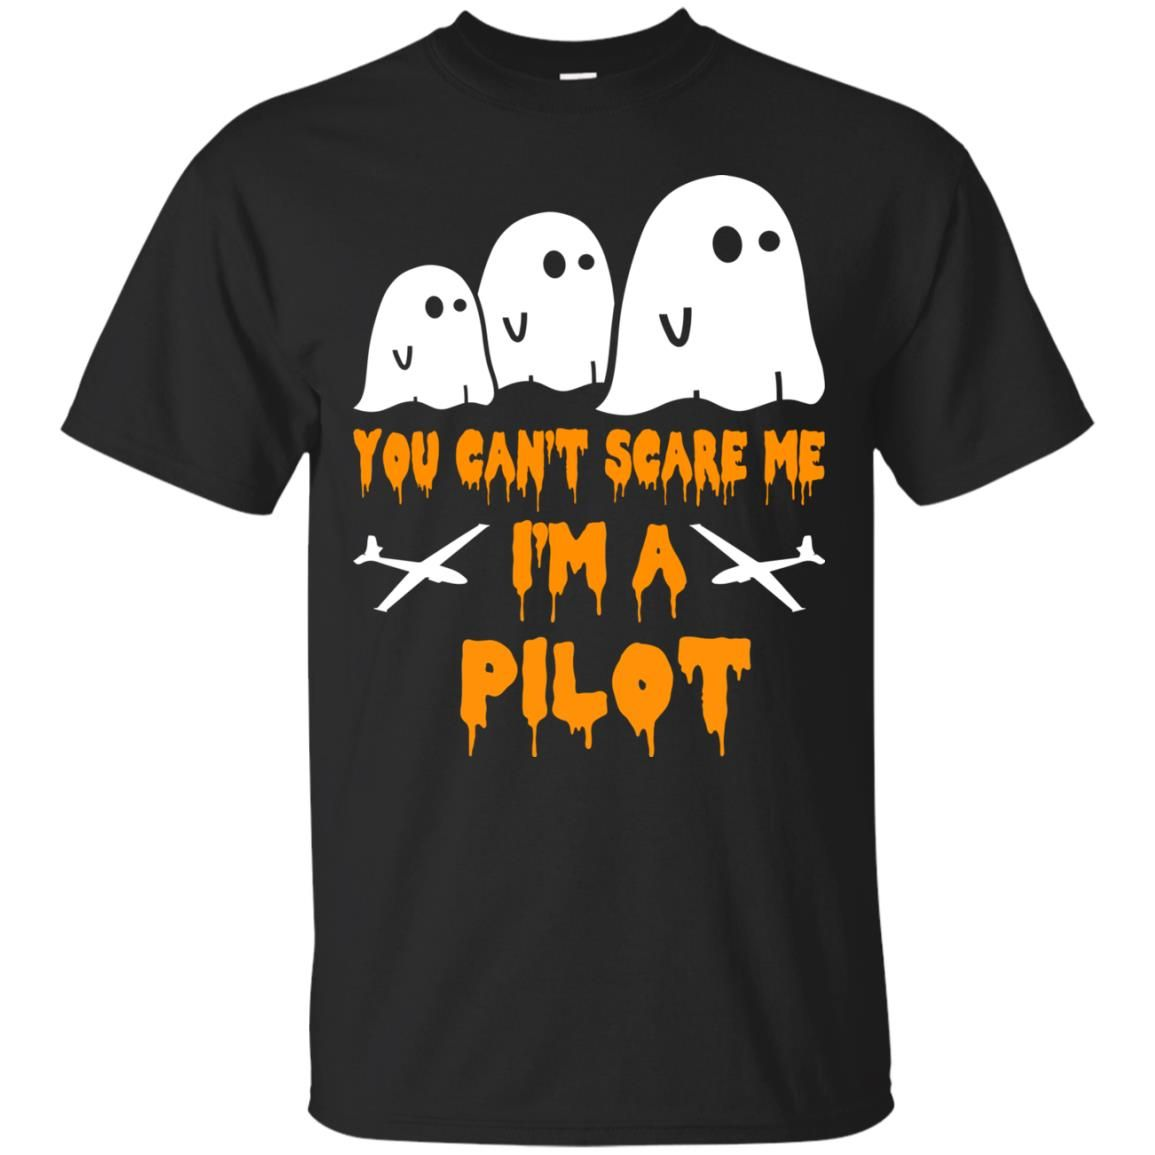 image 644 - You can't scare me I'm a Pilot shirt, hoodie, tank